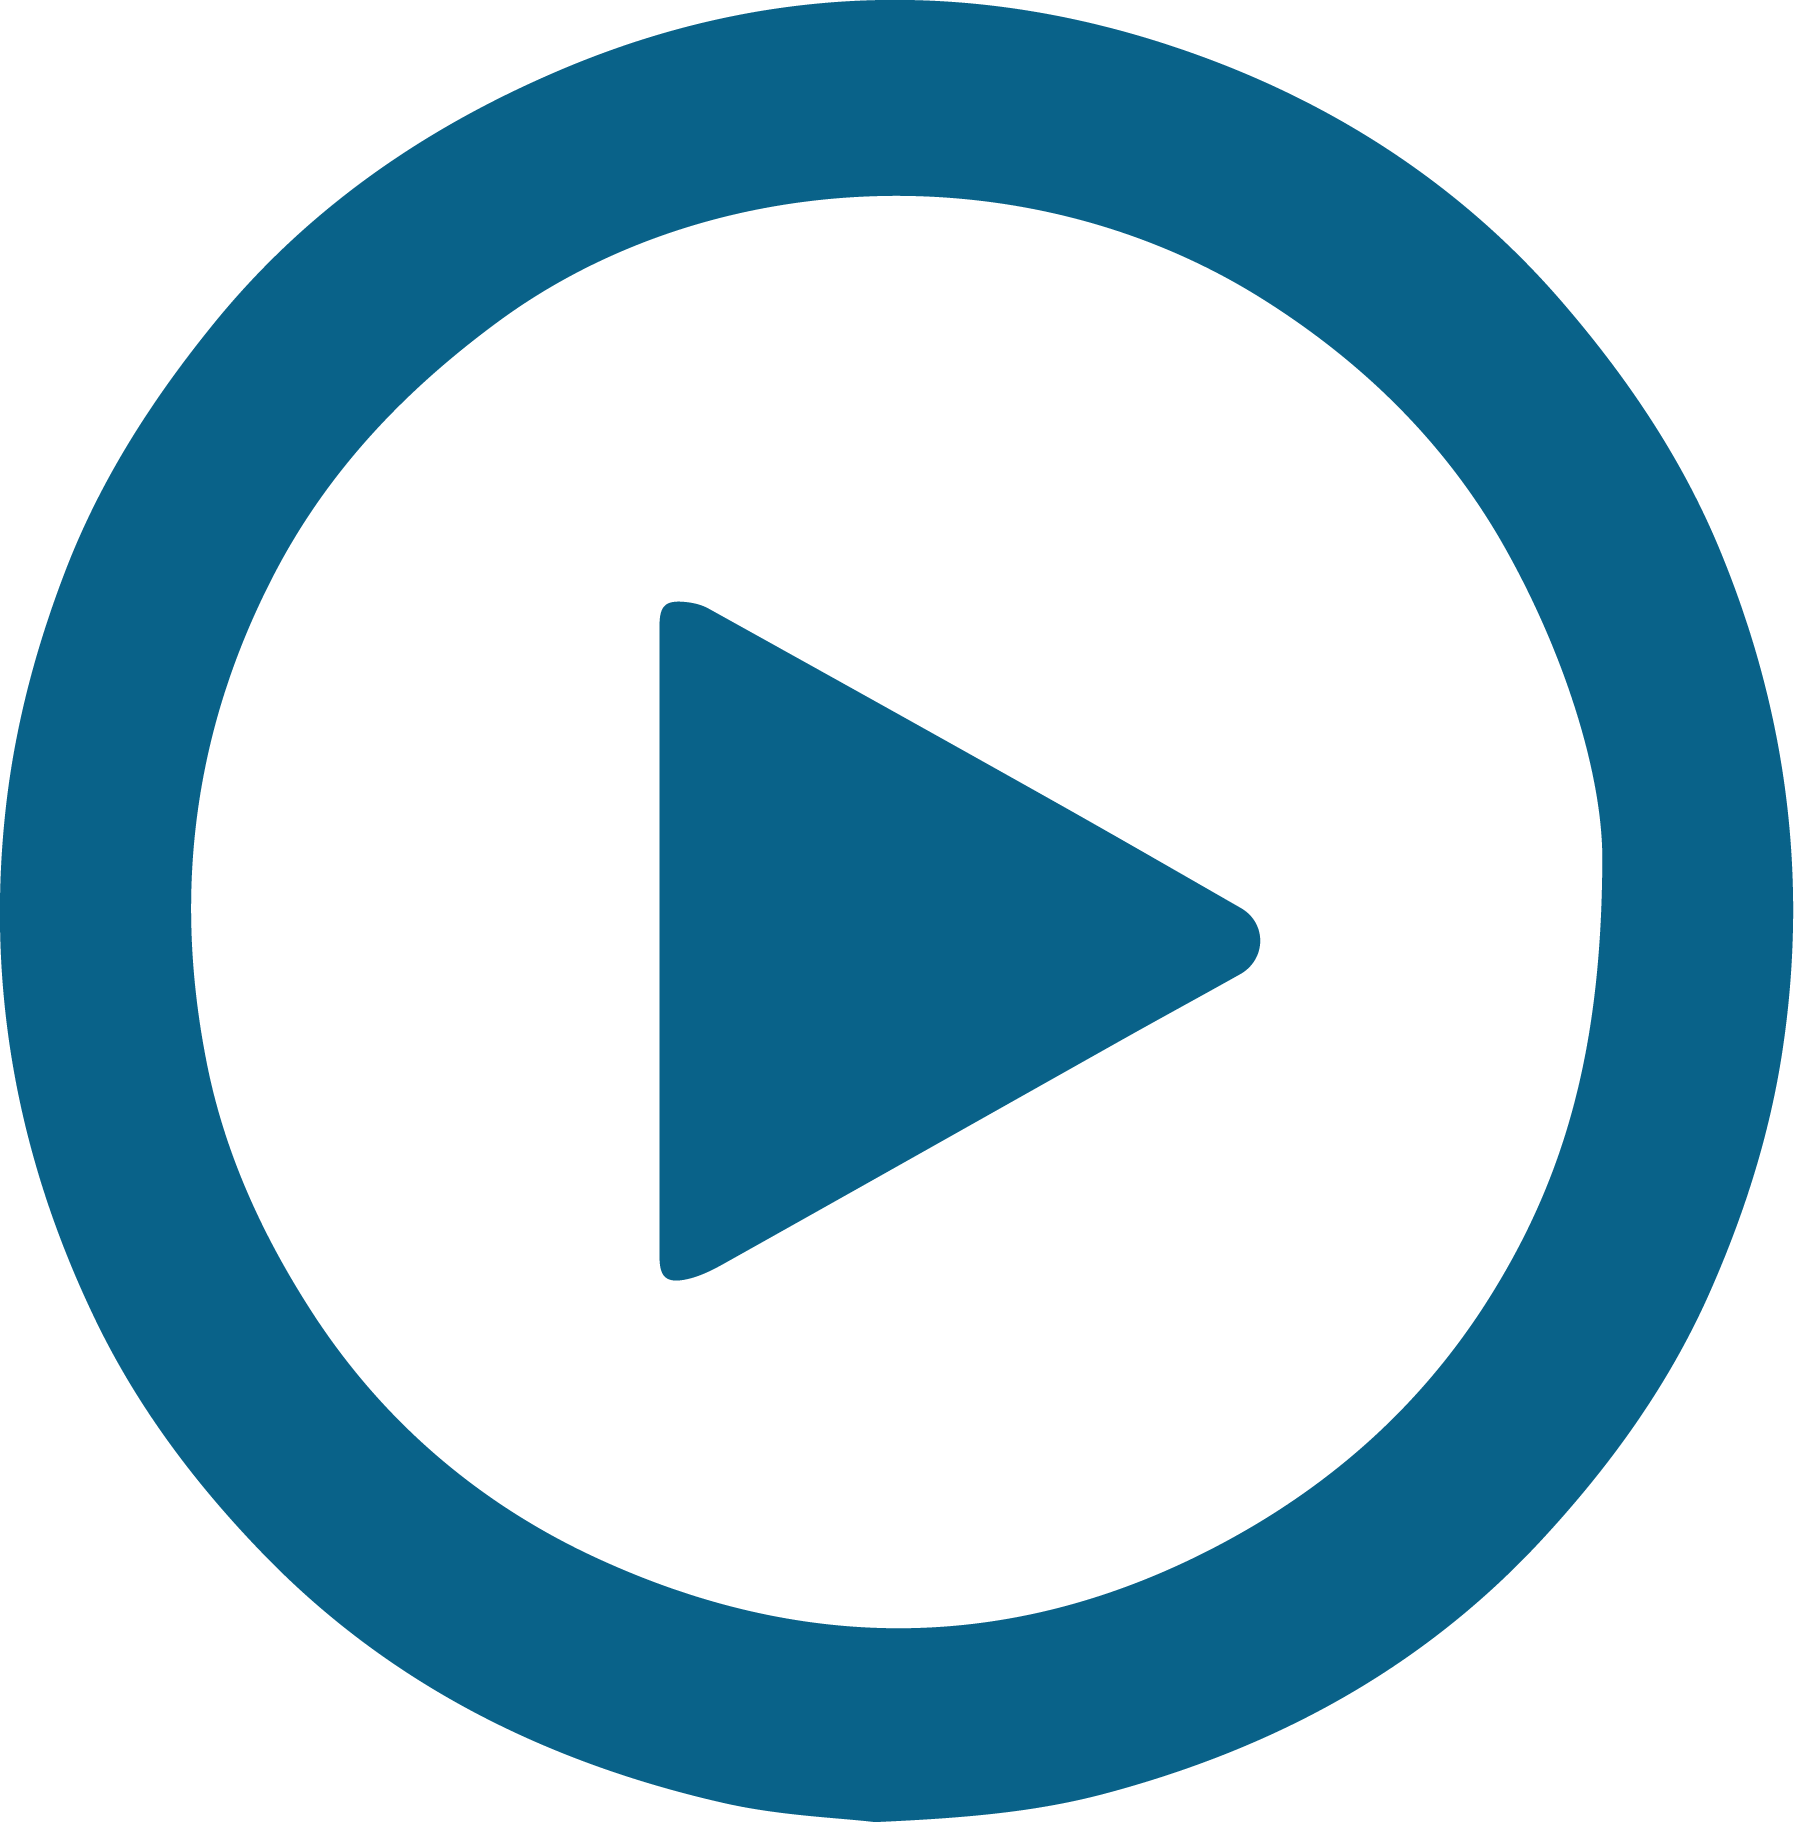 blue play button | Soil and groundwater remediation ...